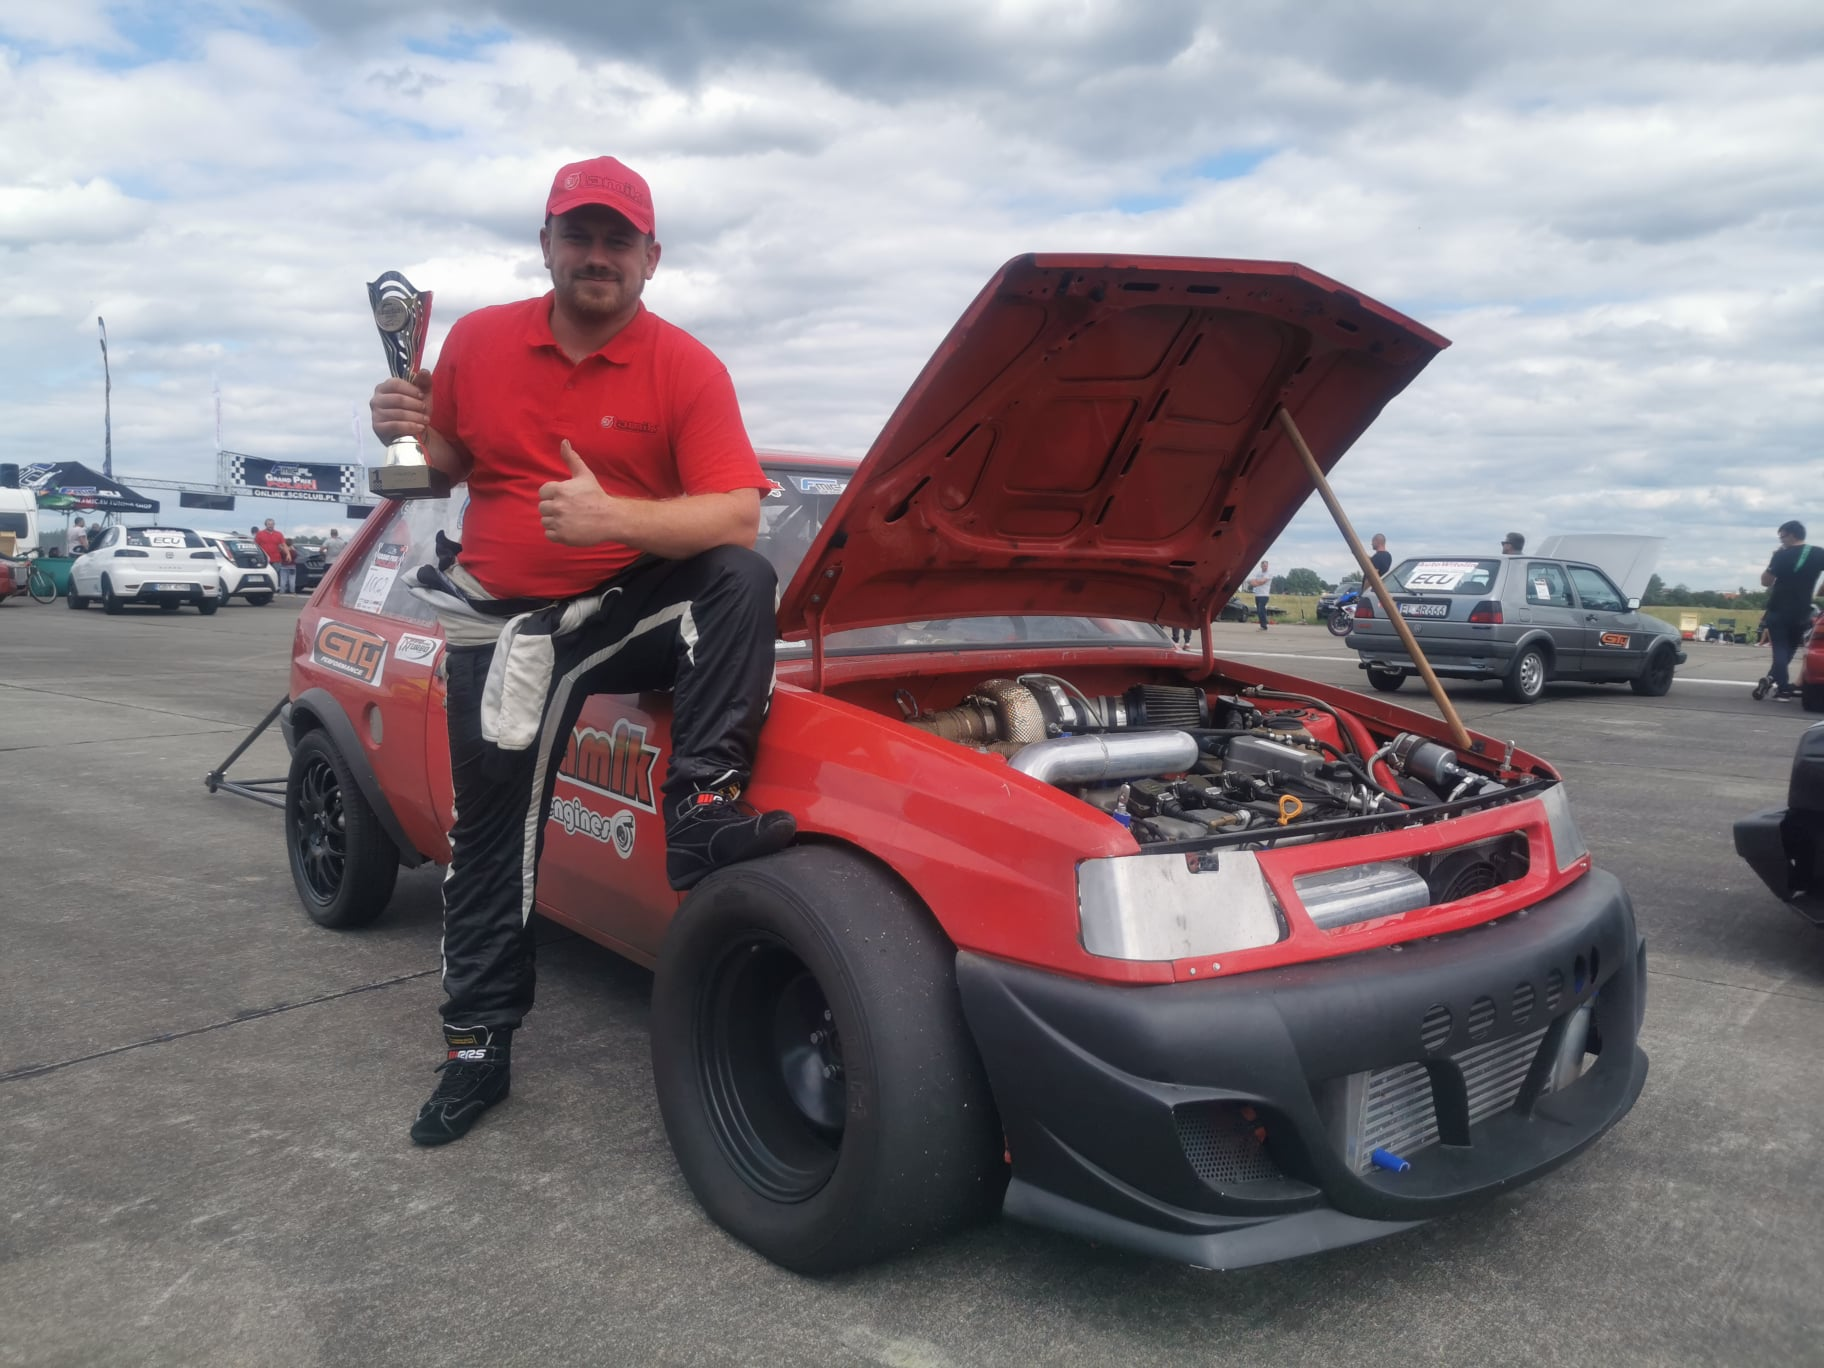 Opel Corsa A with a Turbo R30 VR6